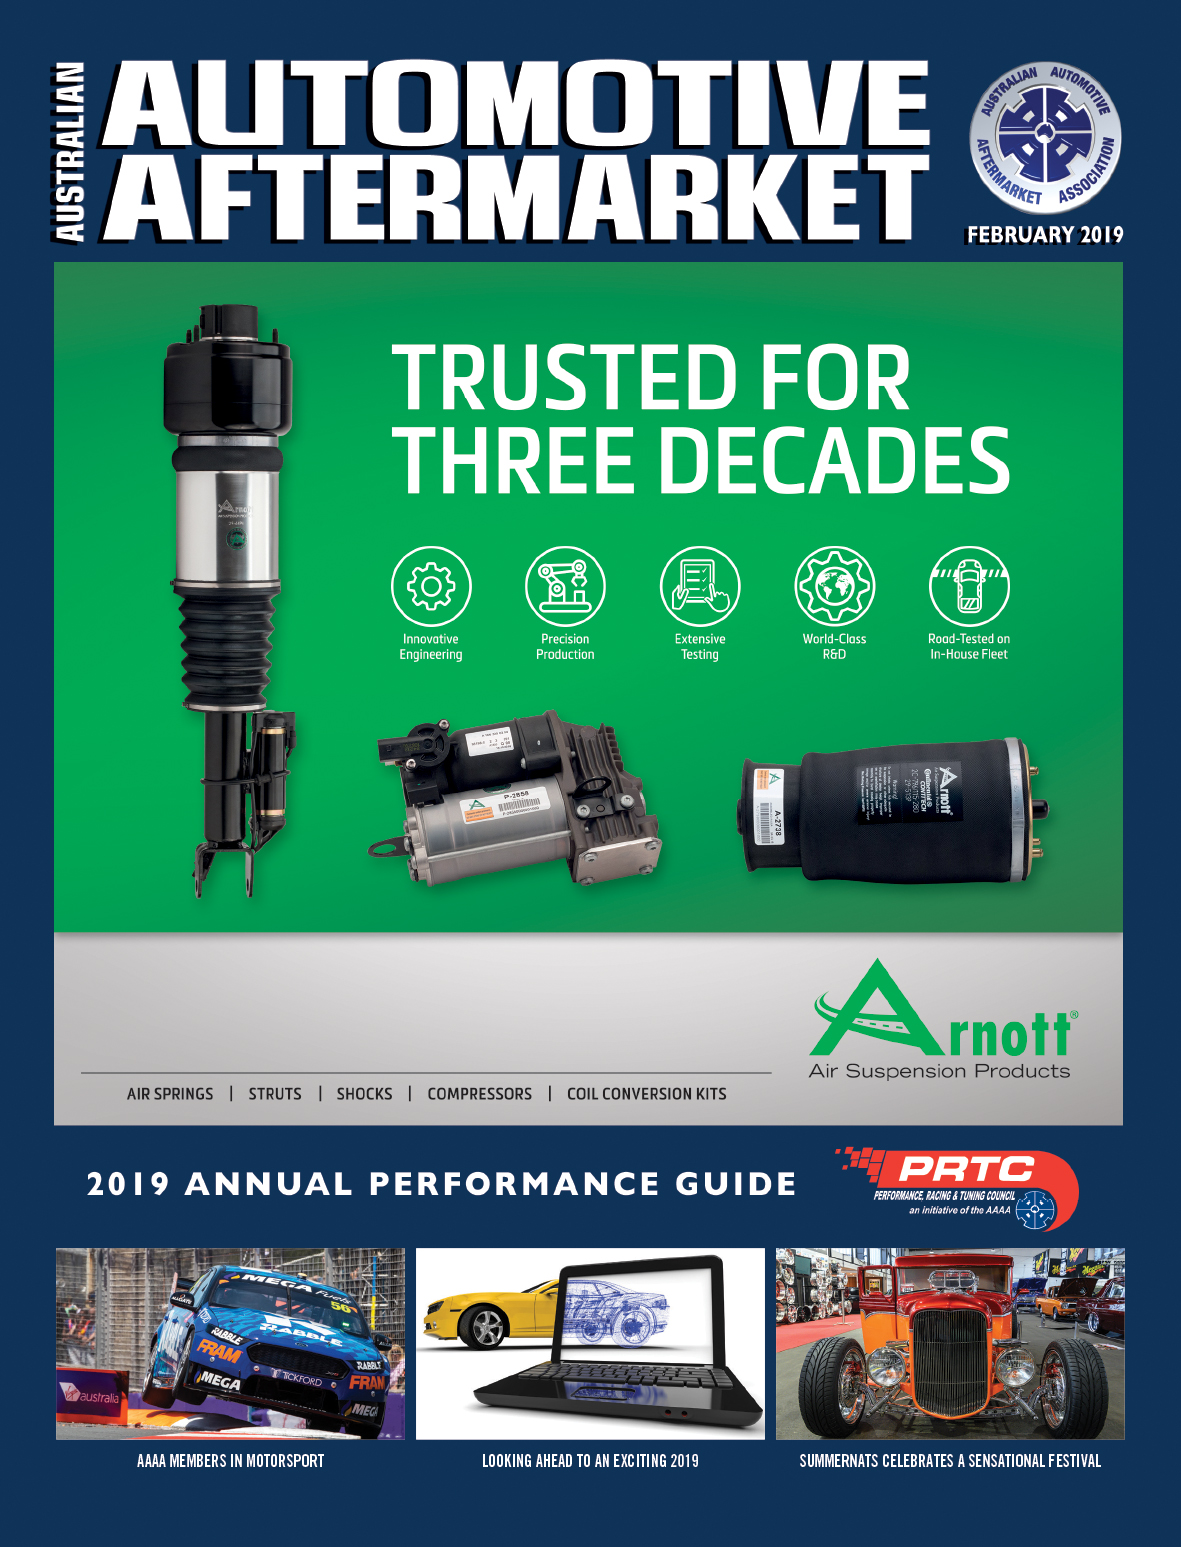 2019 ANNUAL PERFORMANCE GUIDE